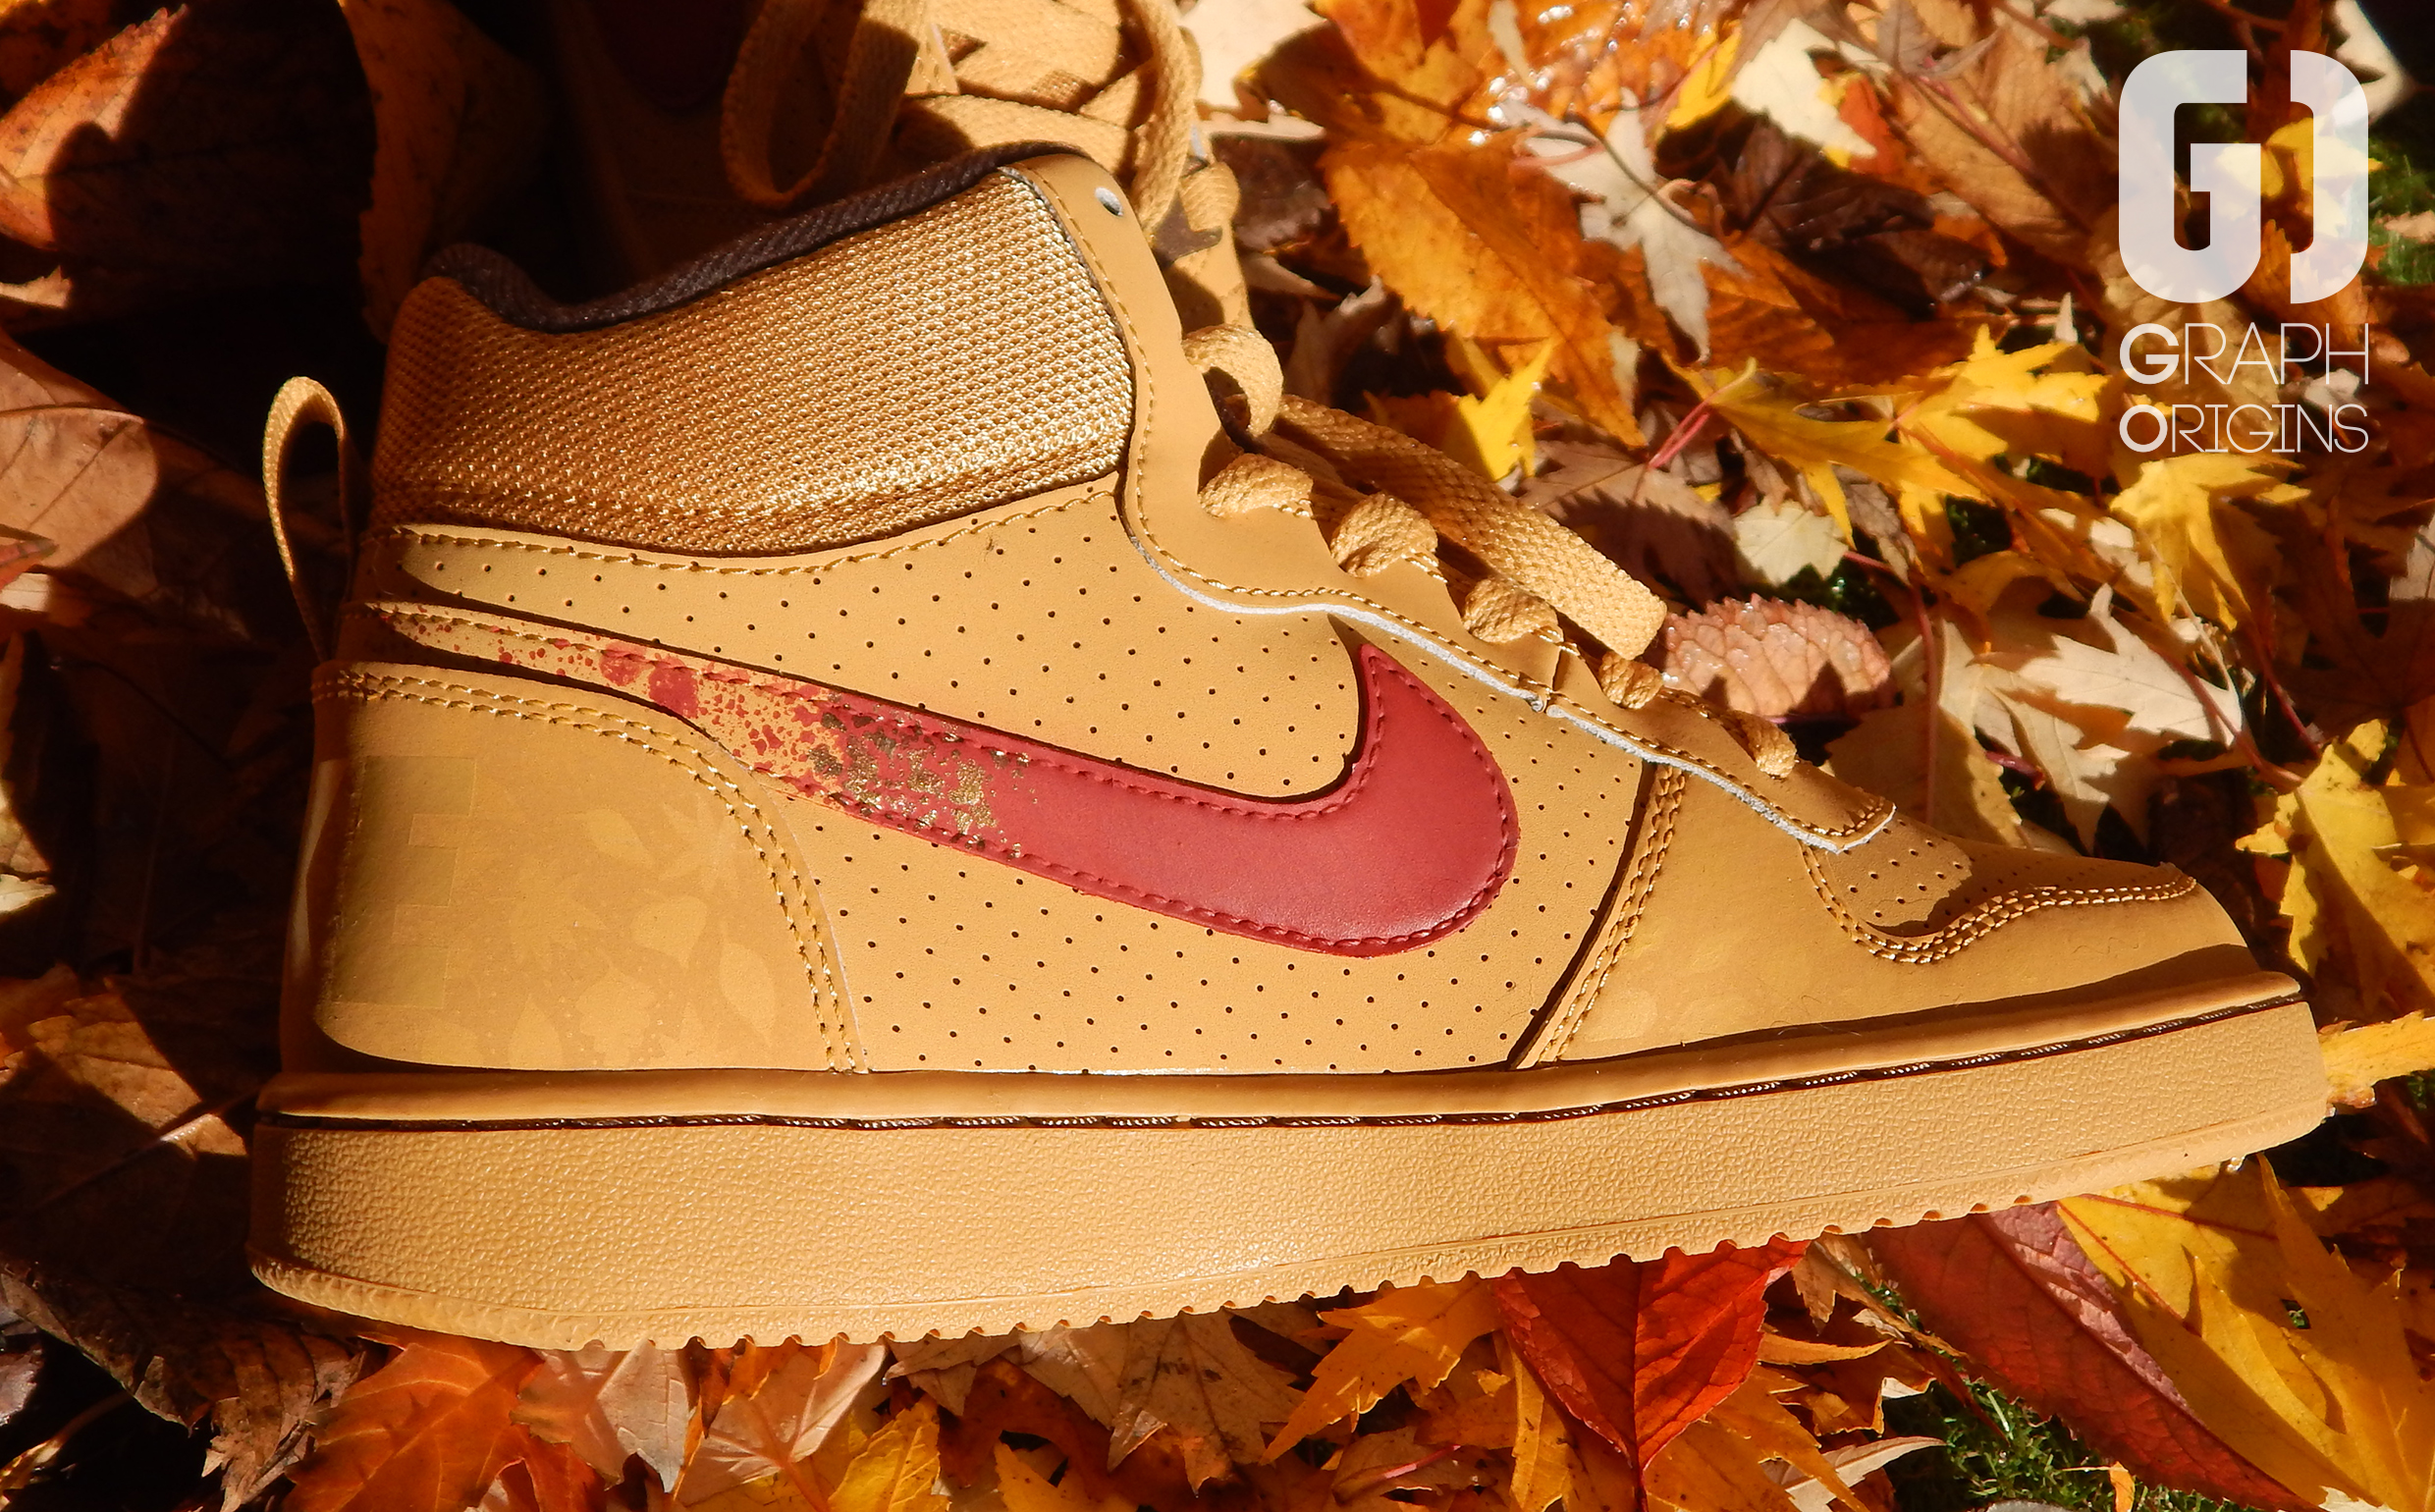 Custom baskets montantes Nike court borough mid autumn leaves graph origins 2